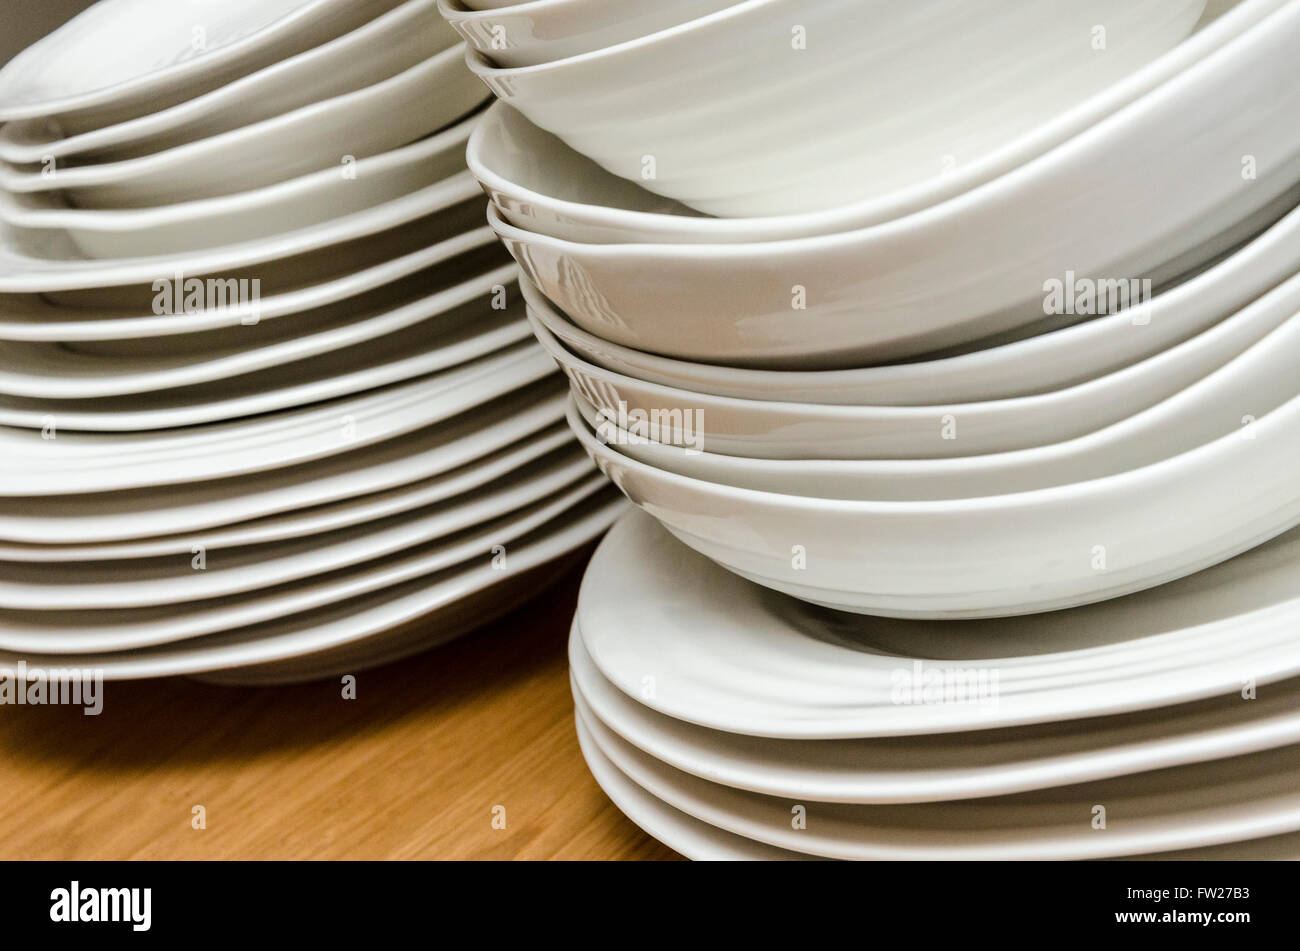 Sophie Conran For Portmeirion crockery or a wooden table - Stock Image